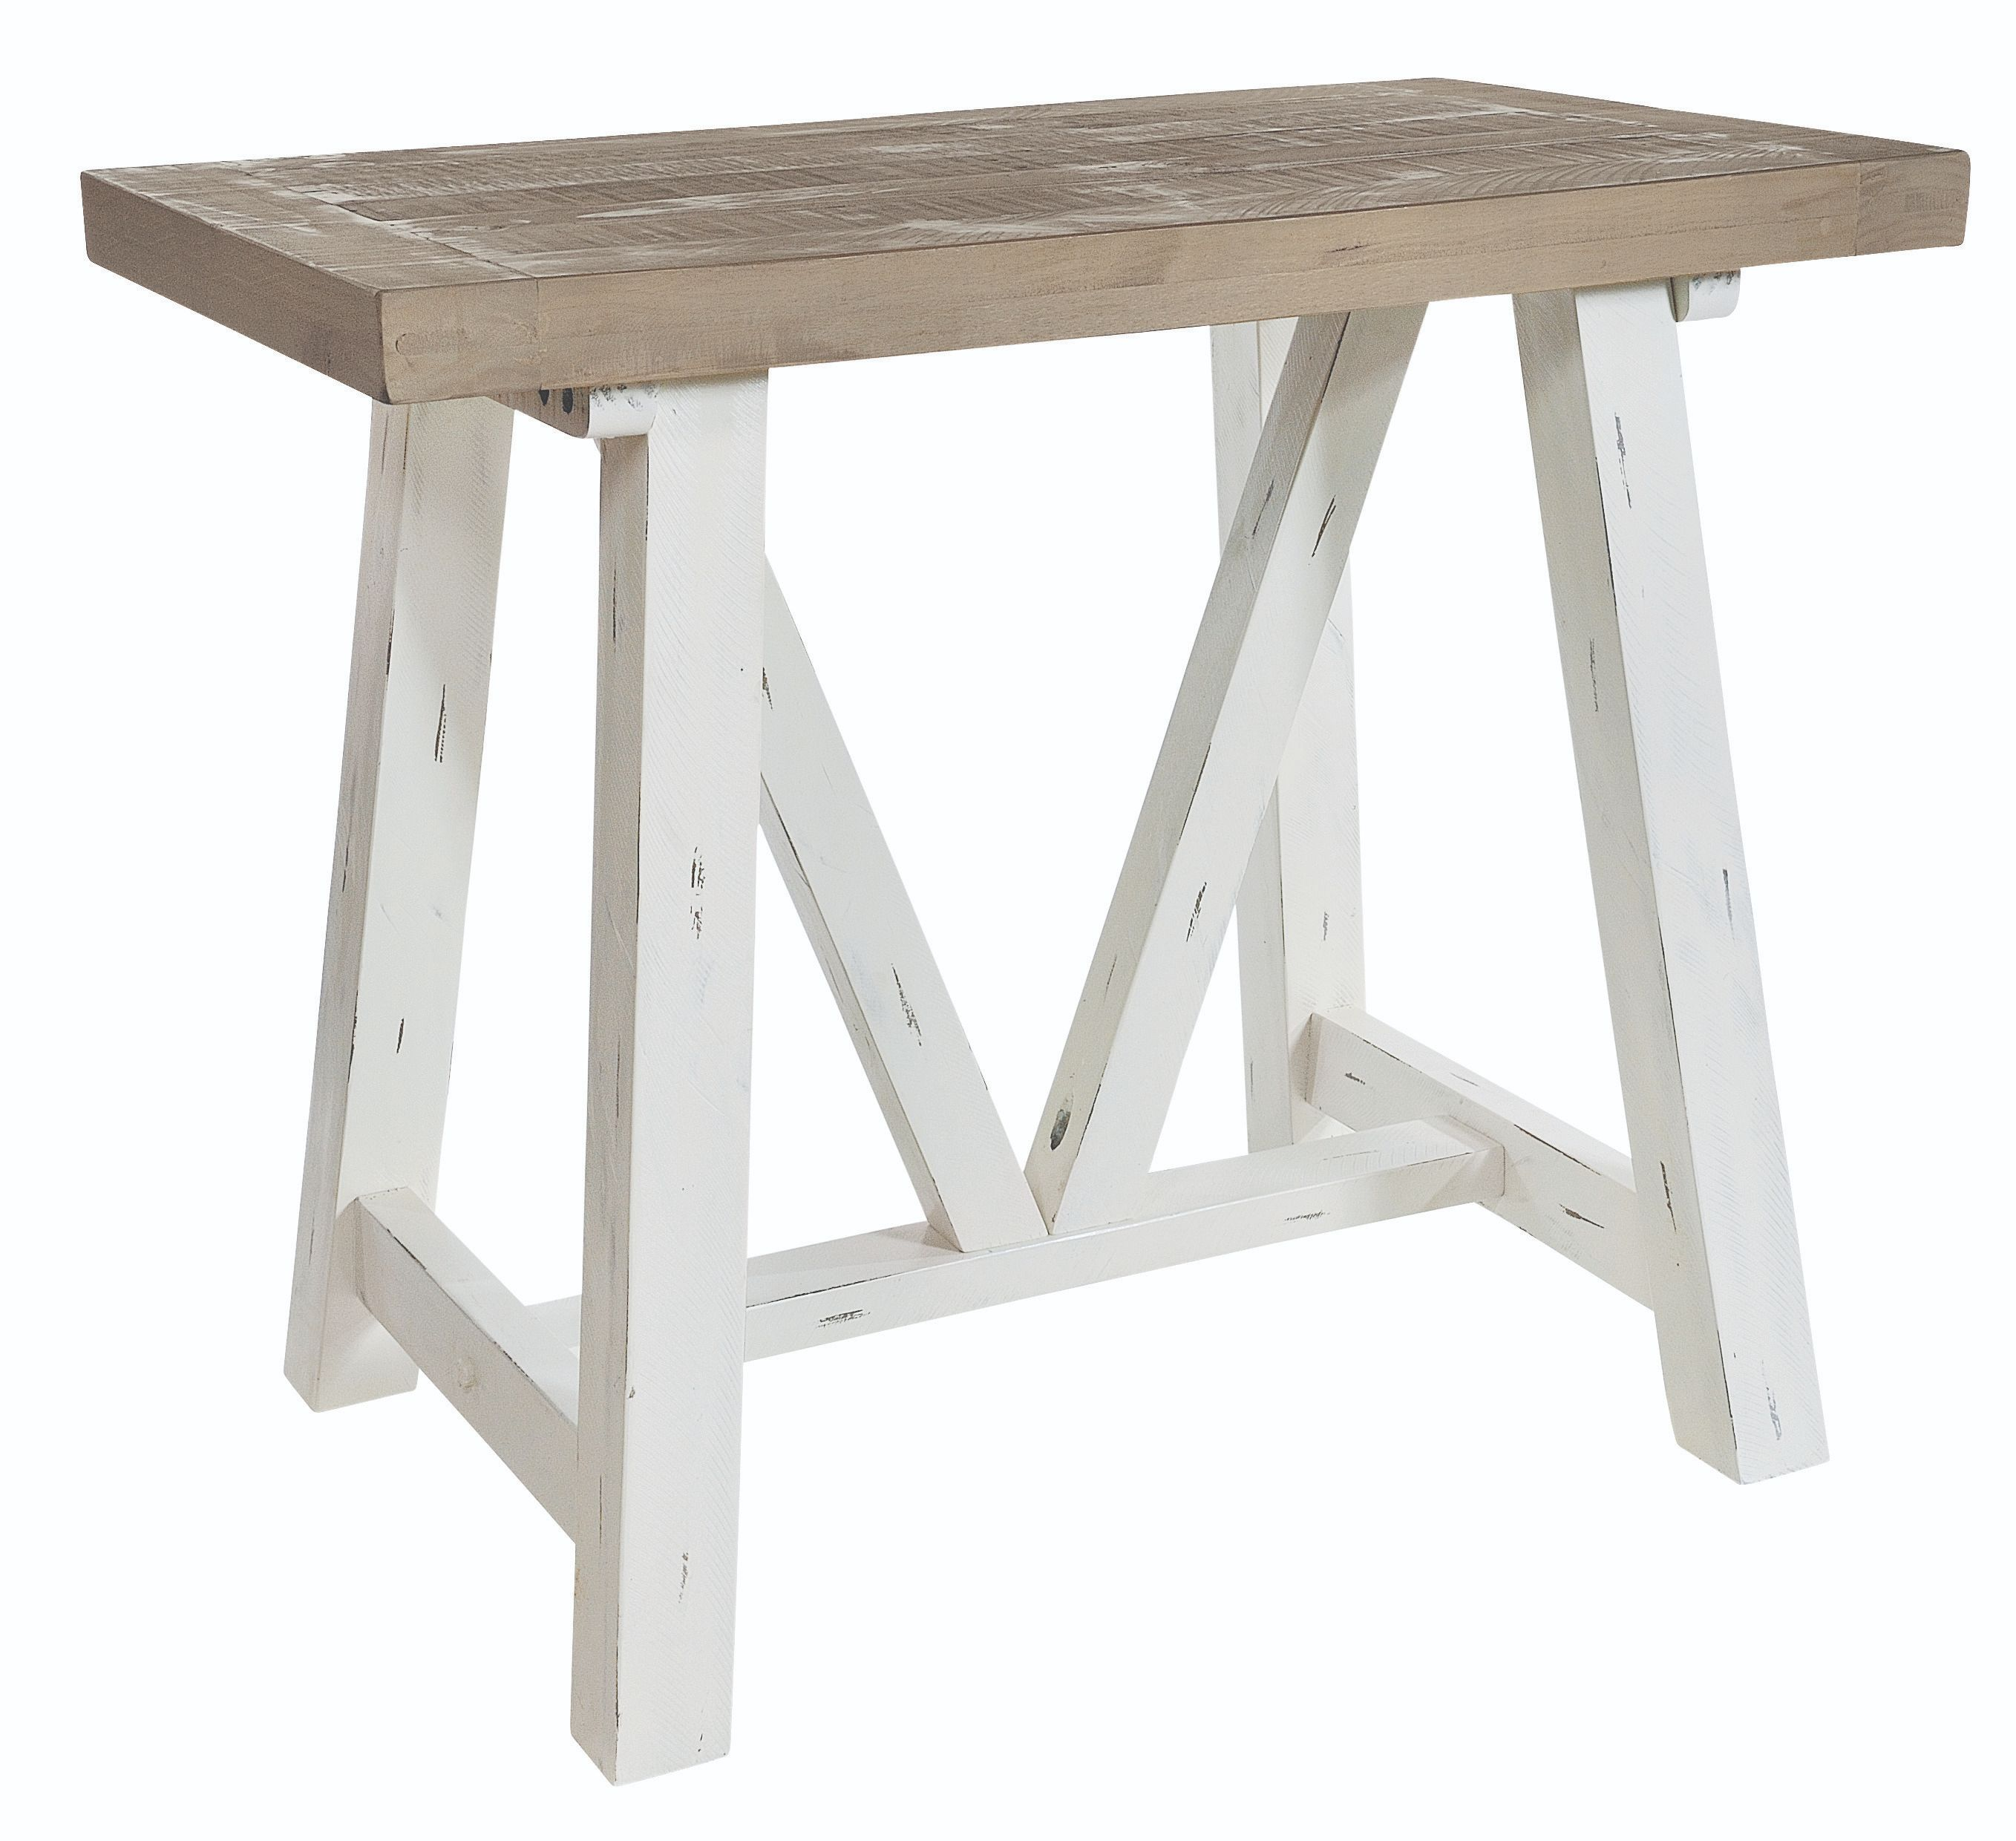 PURBECK BAR TABLE Distressed Paint & Driftwood